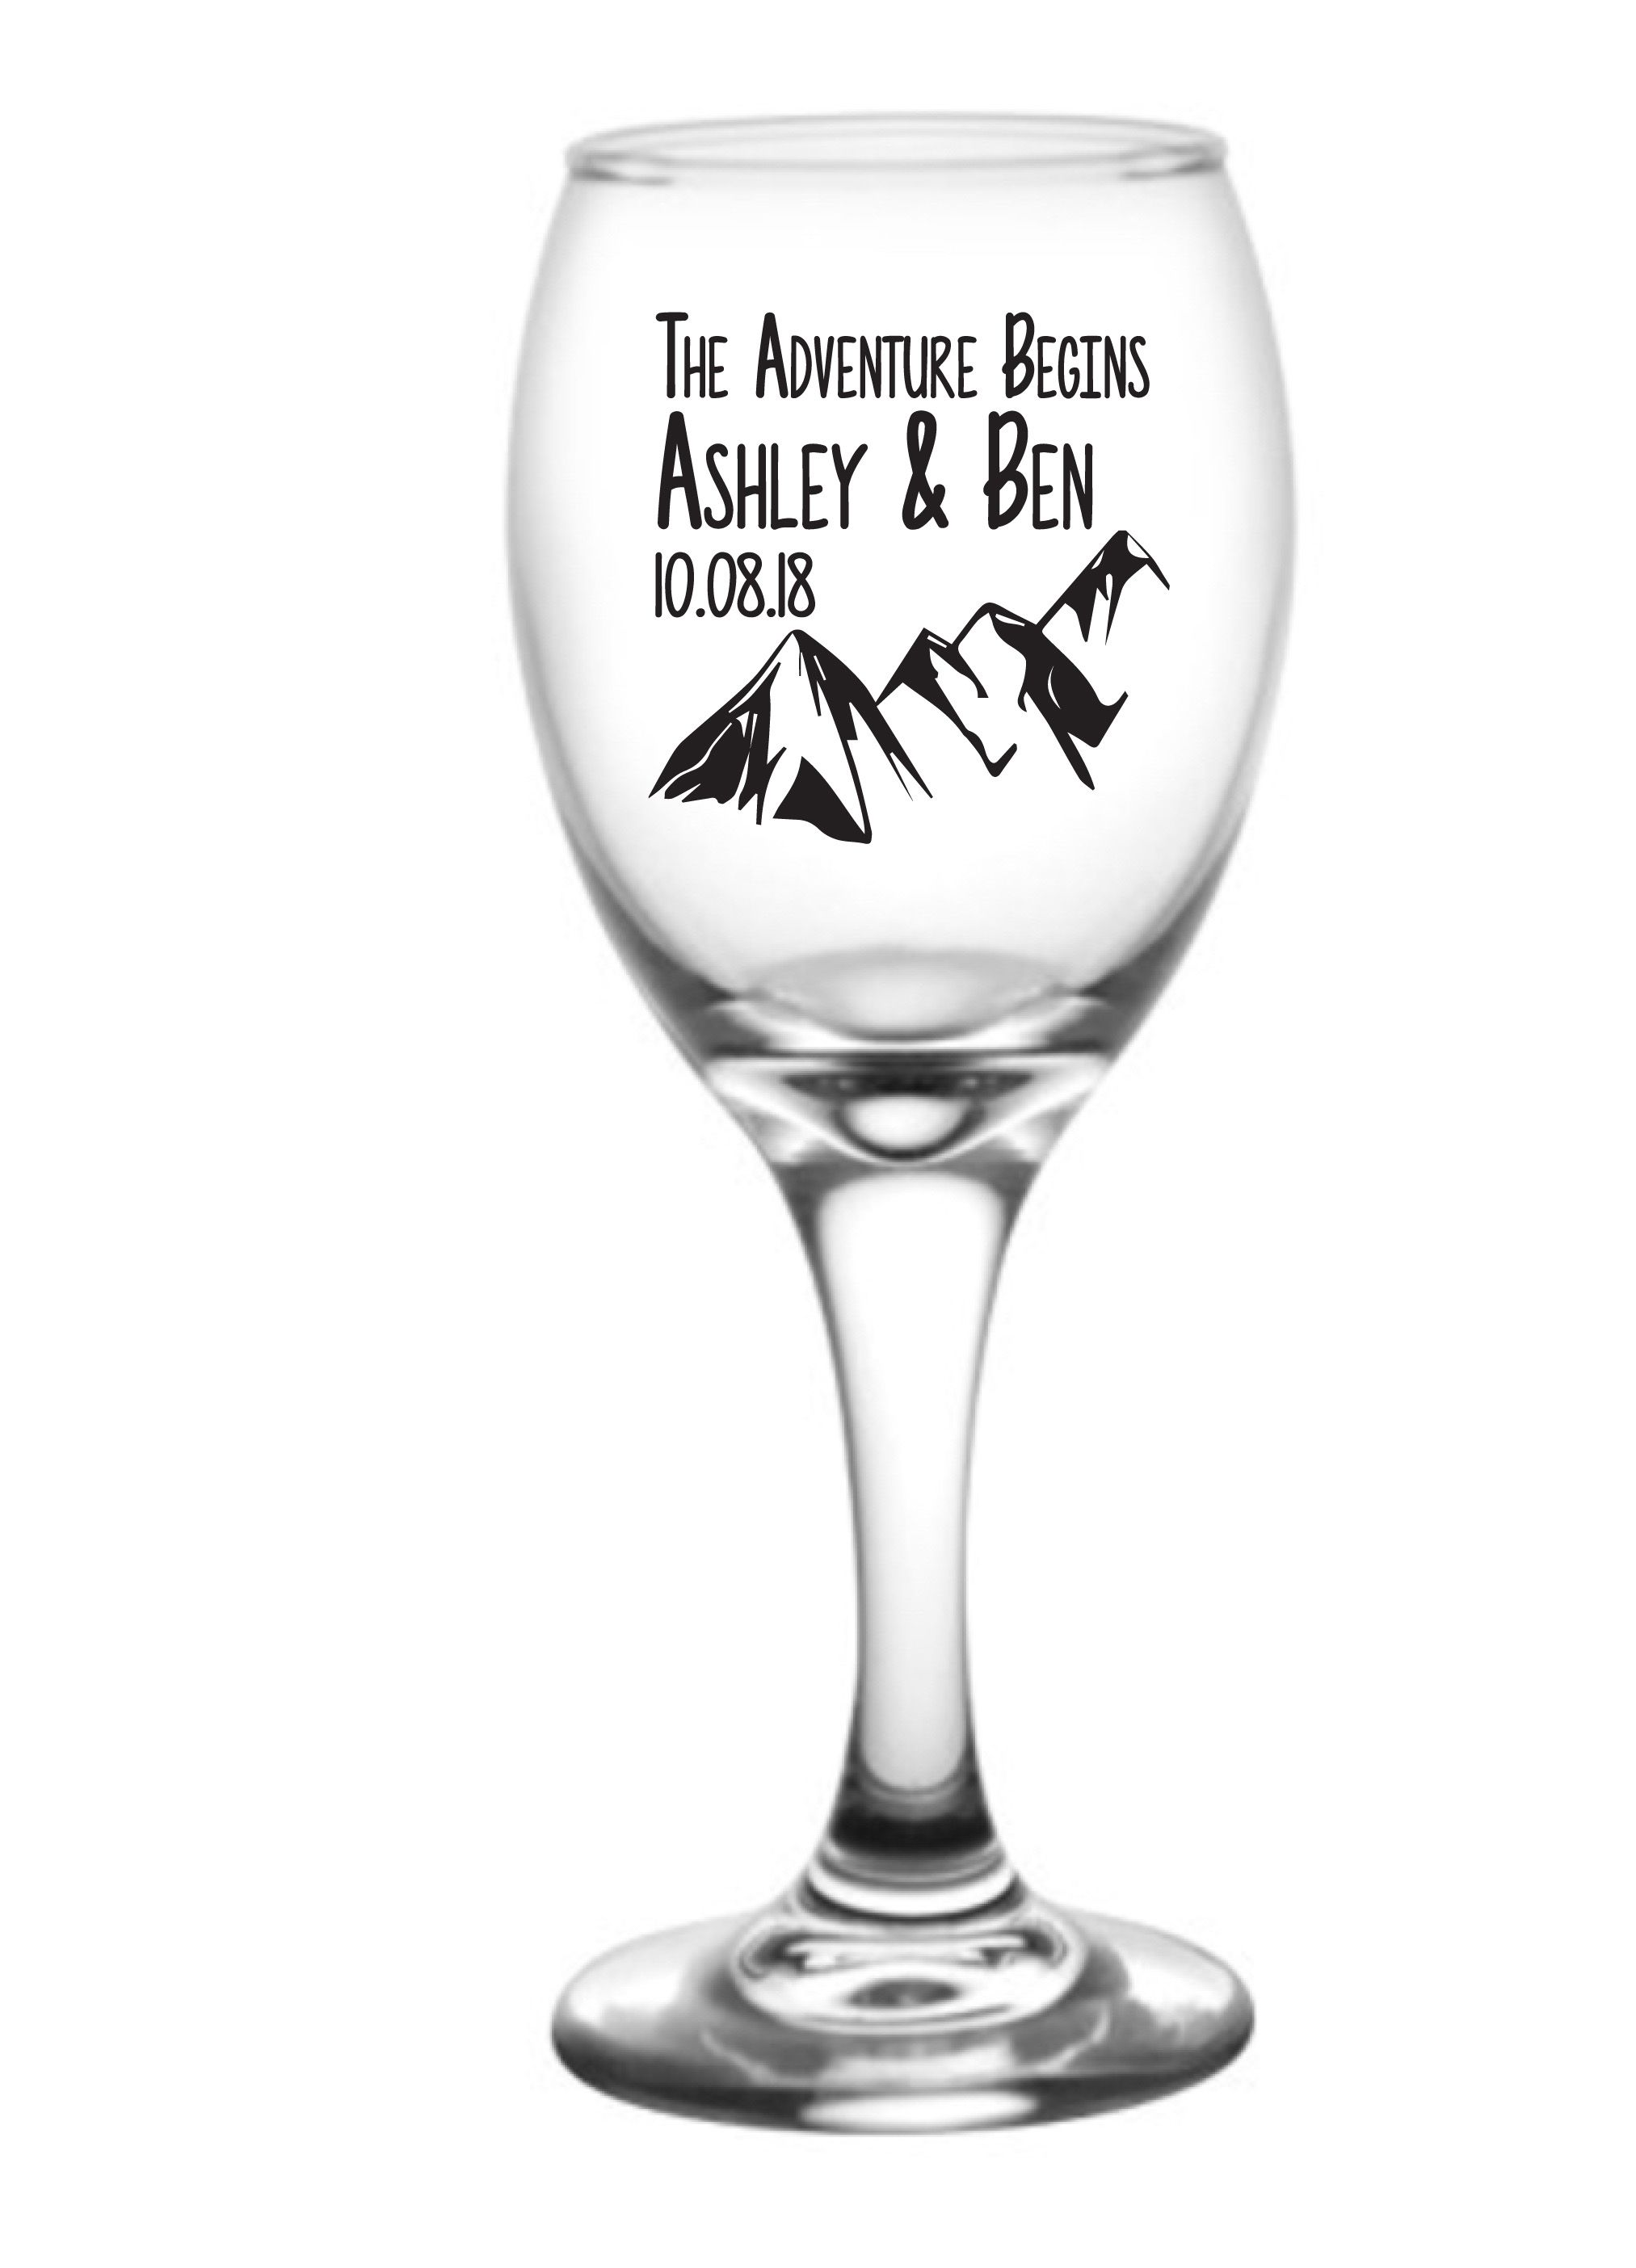 Wedding Wine Glasses Wedding Favors The Adventure Begins